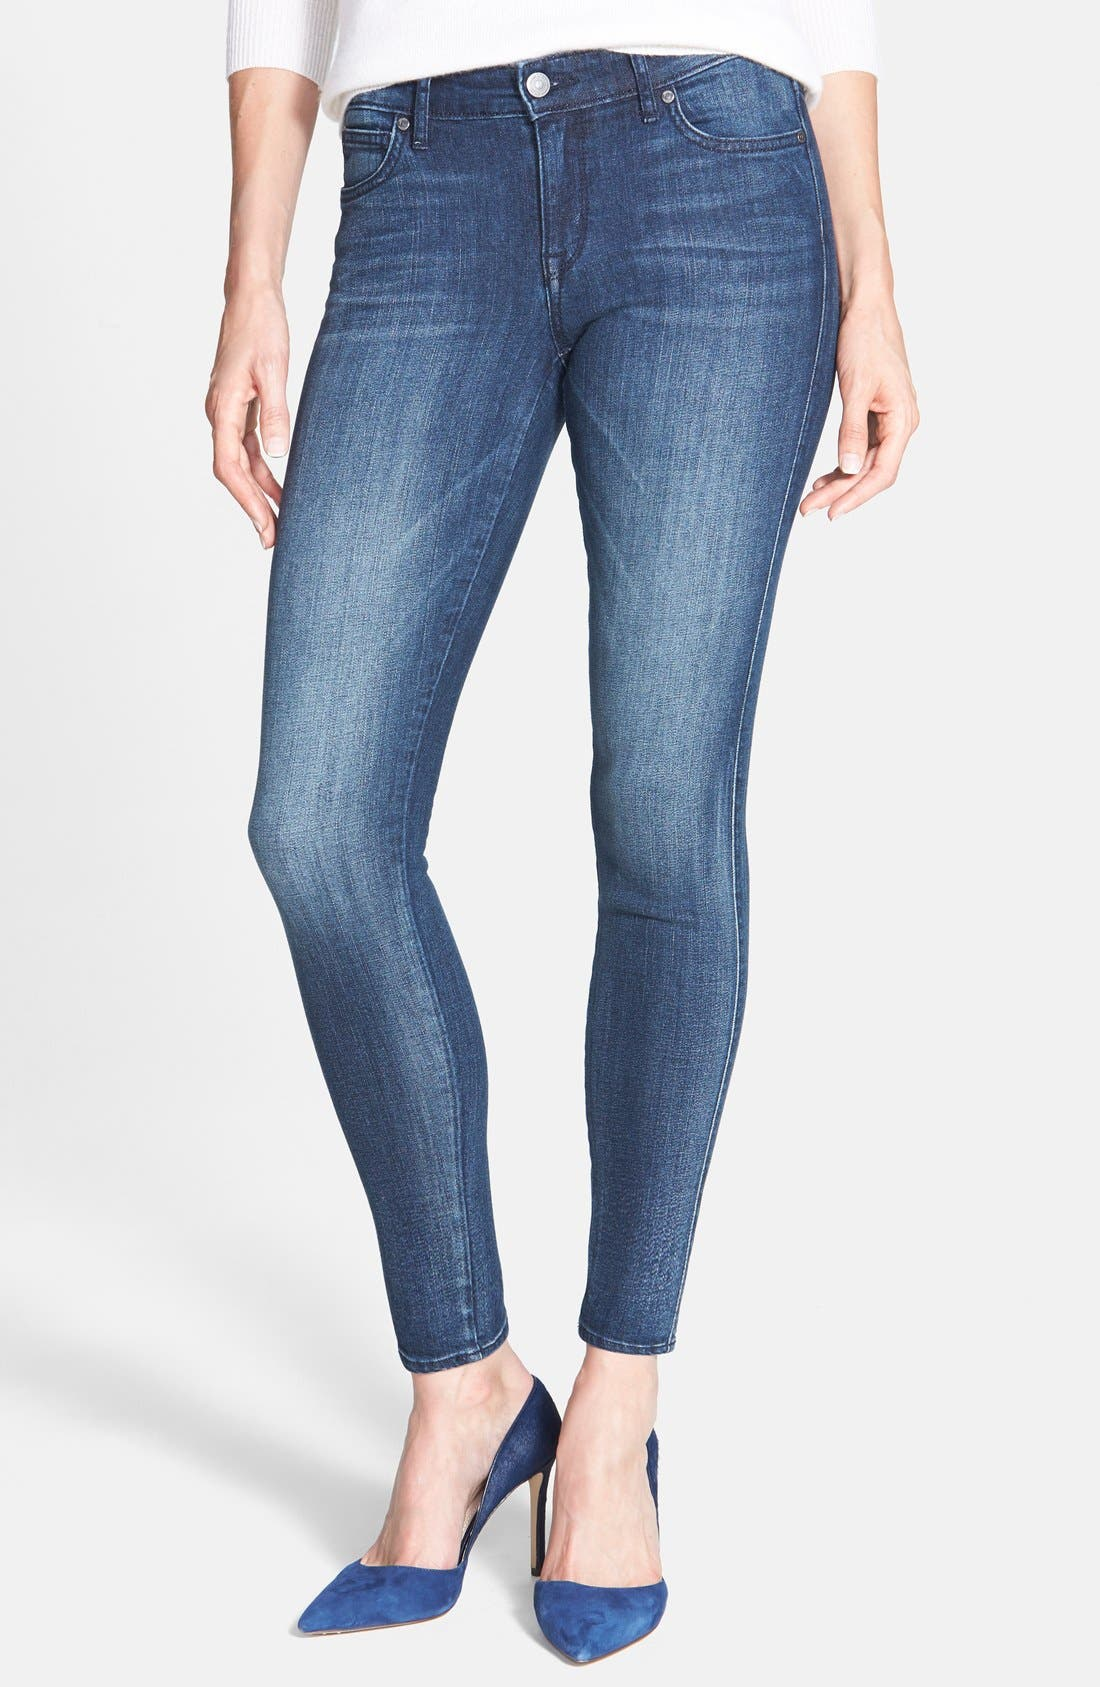 Alternate Image 1 Selected - CJ by Cookie Johnson 'Wisdom' Stretch Ankle Skinny Jeans (Mills)